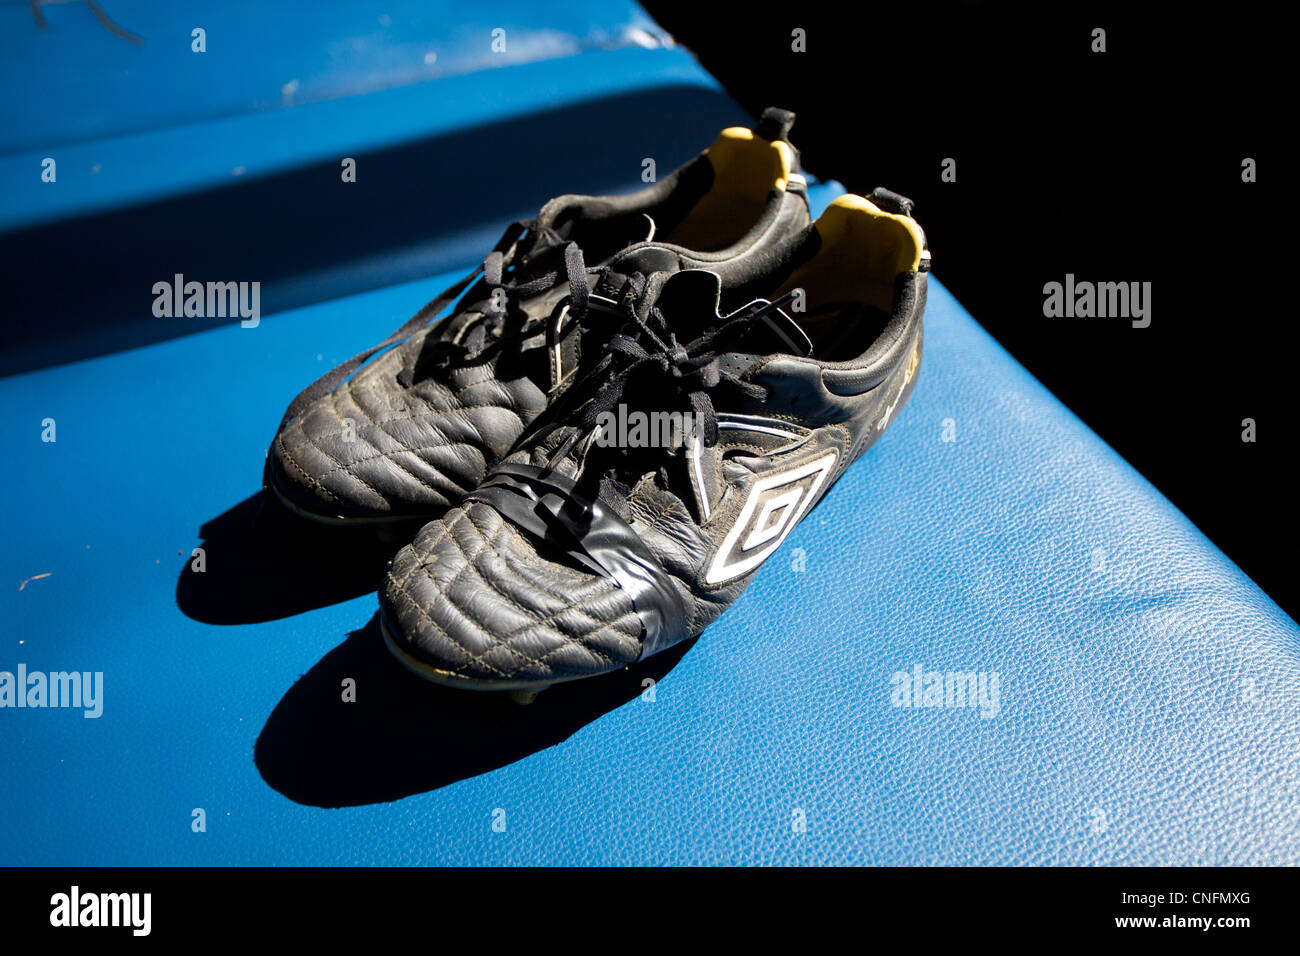 A pair of old football boots. - Stock Image